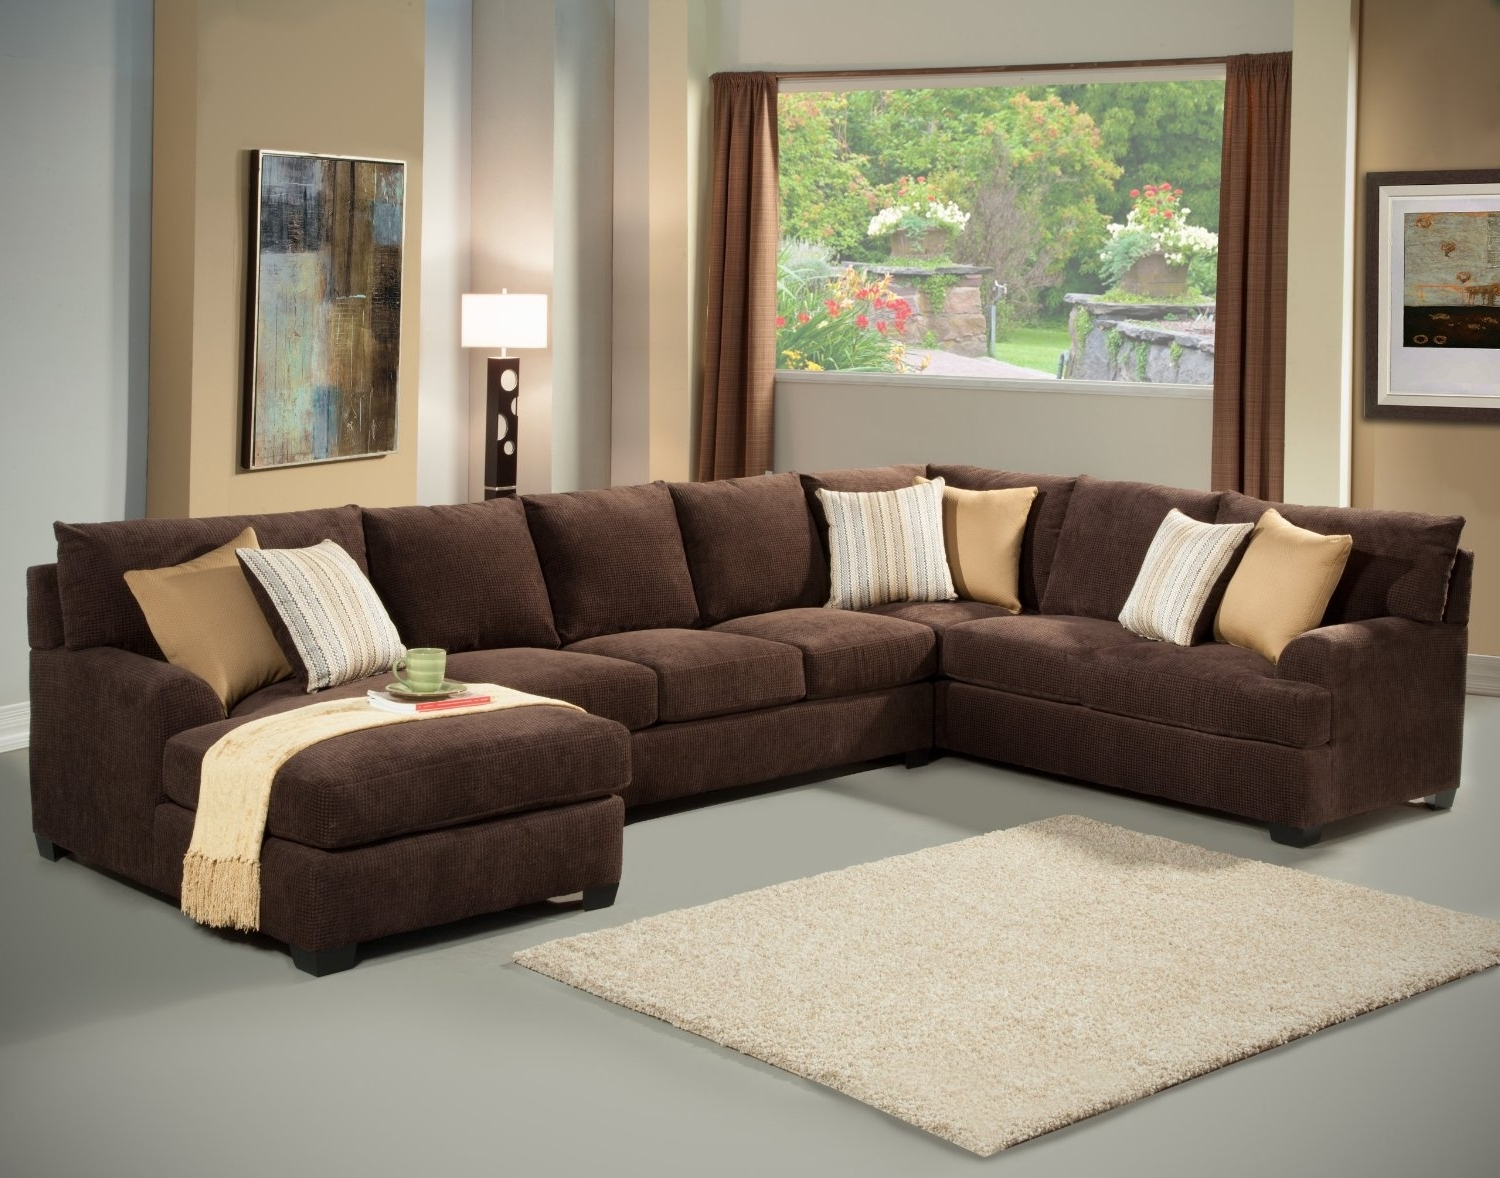 Most Recent Cream Sectionals With Chaise Intended For Furniture (View 5 of 15)